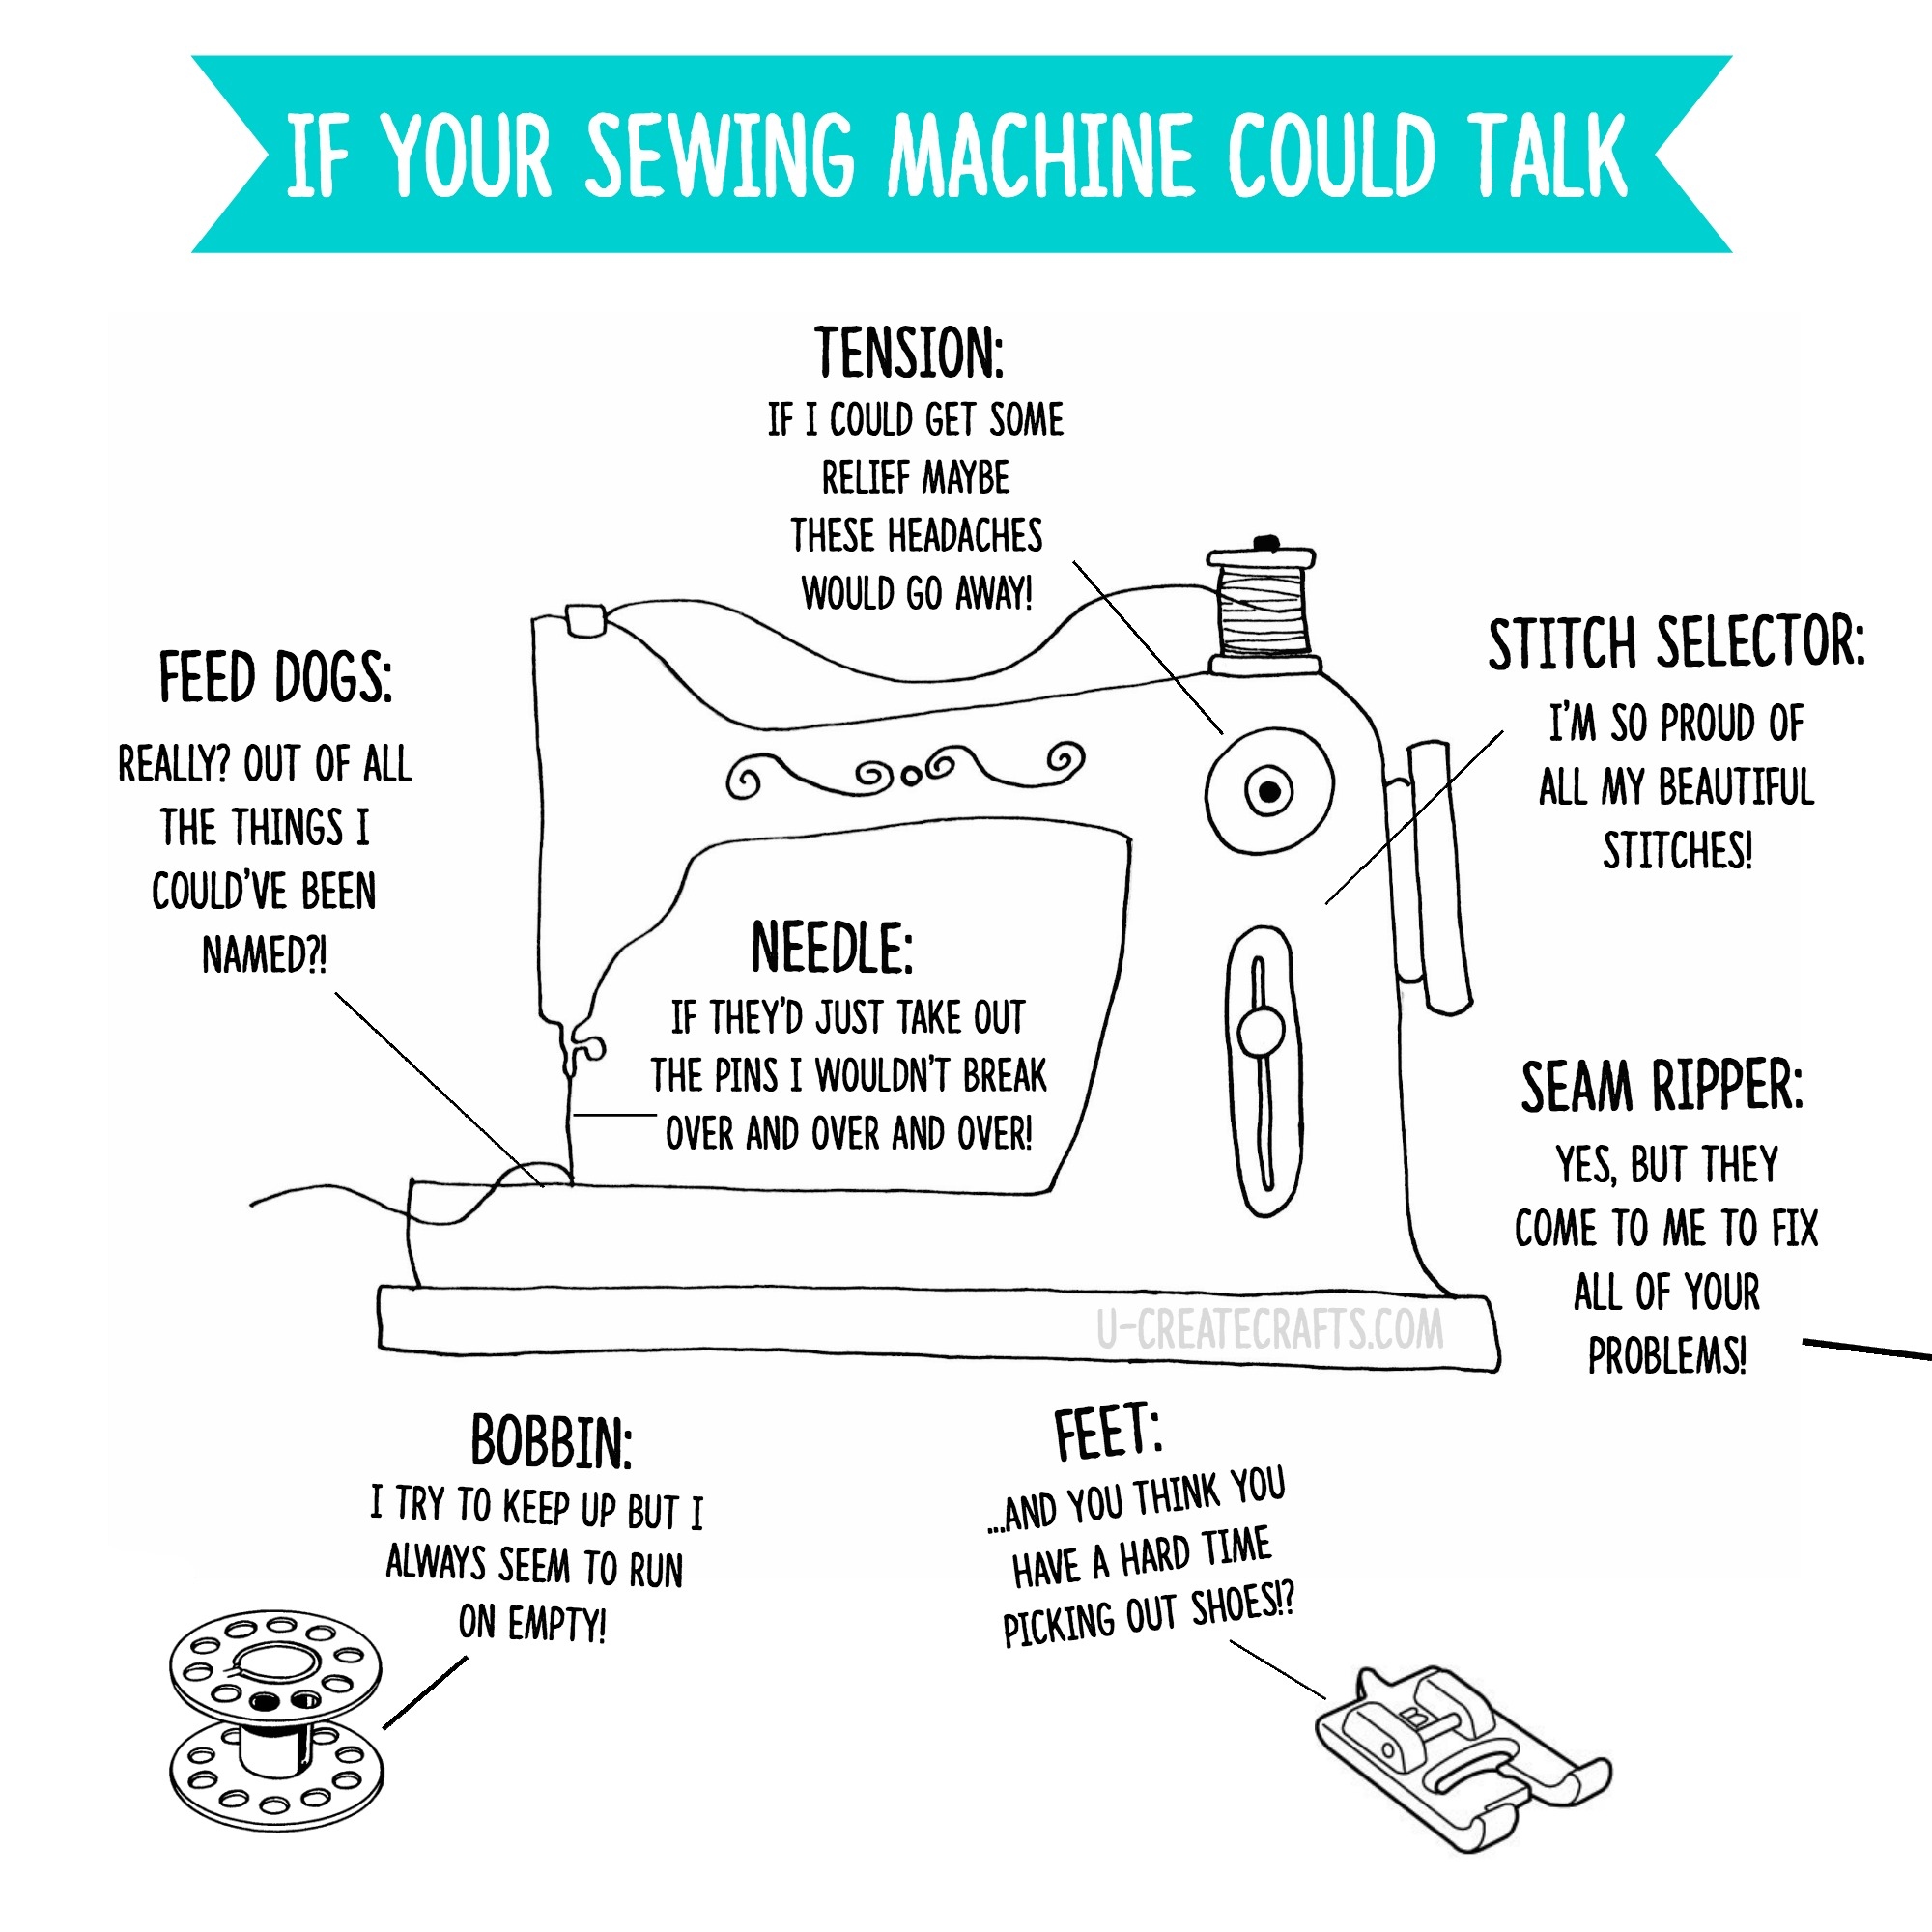 If Your Sewing Machine Could Talk